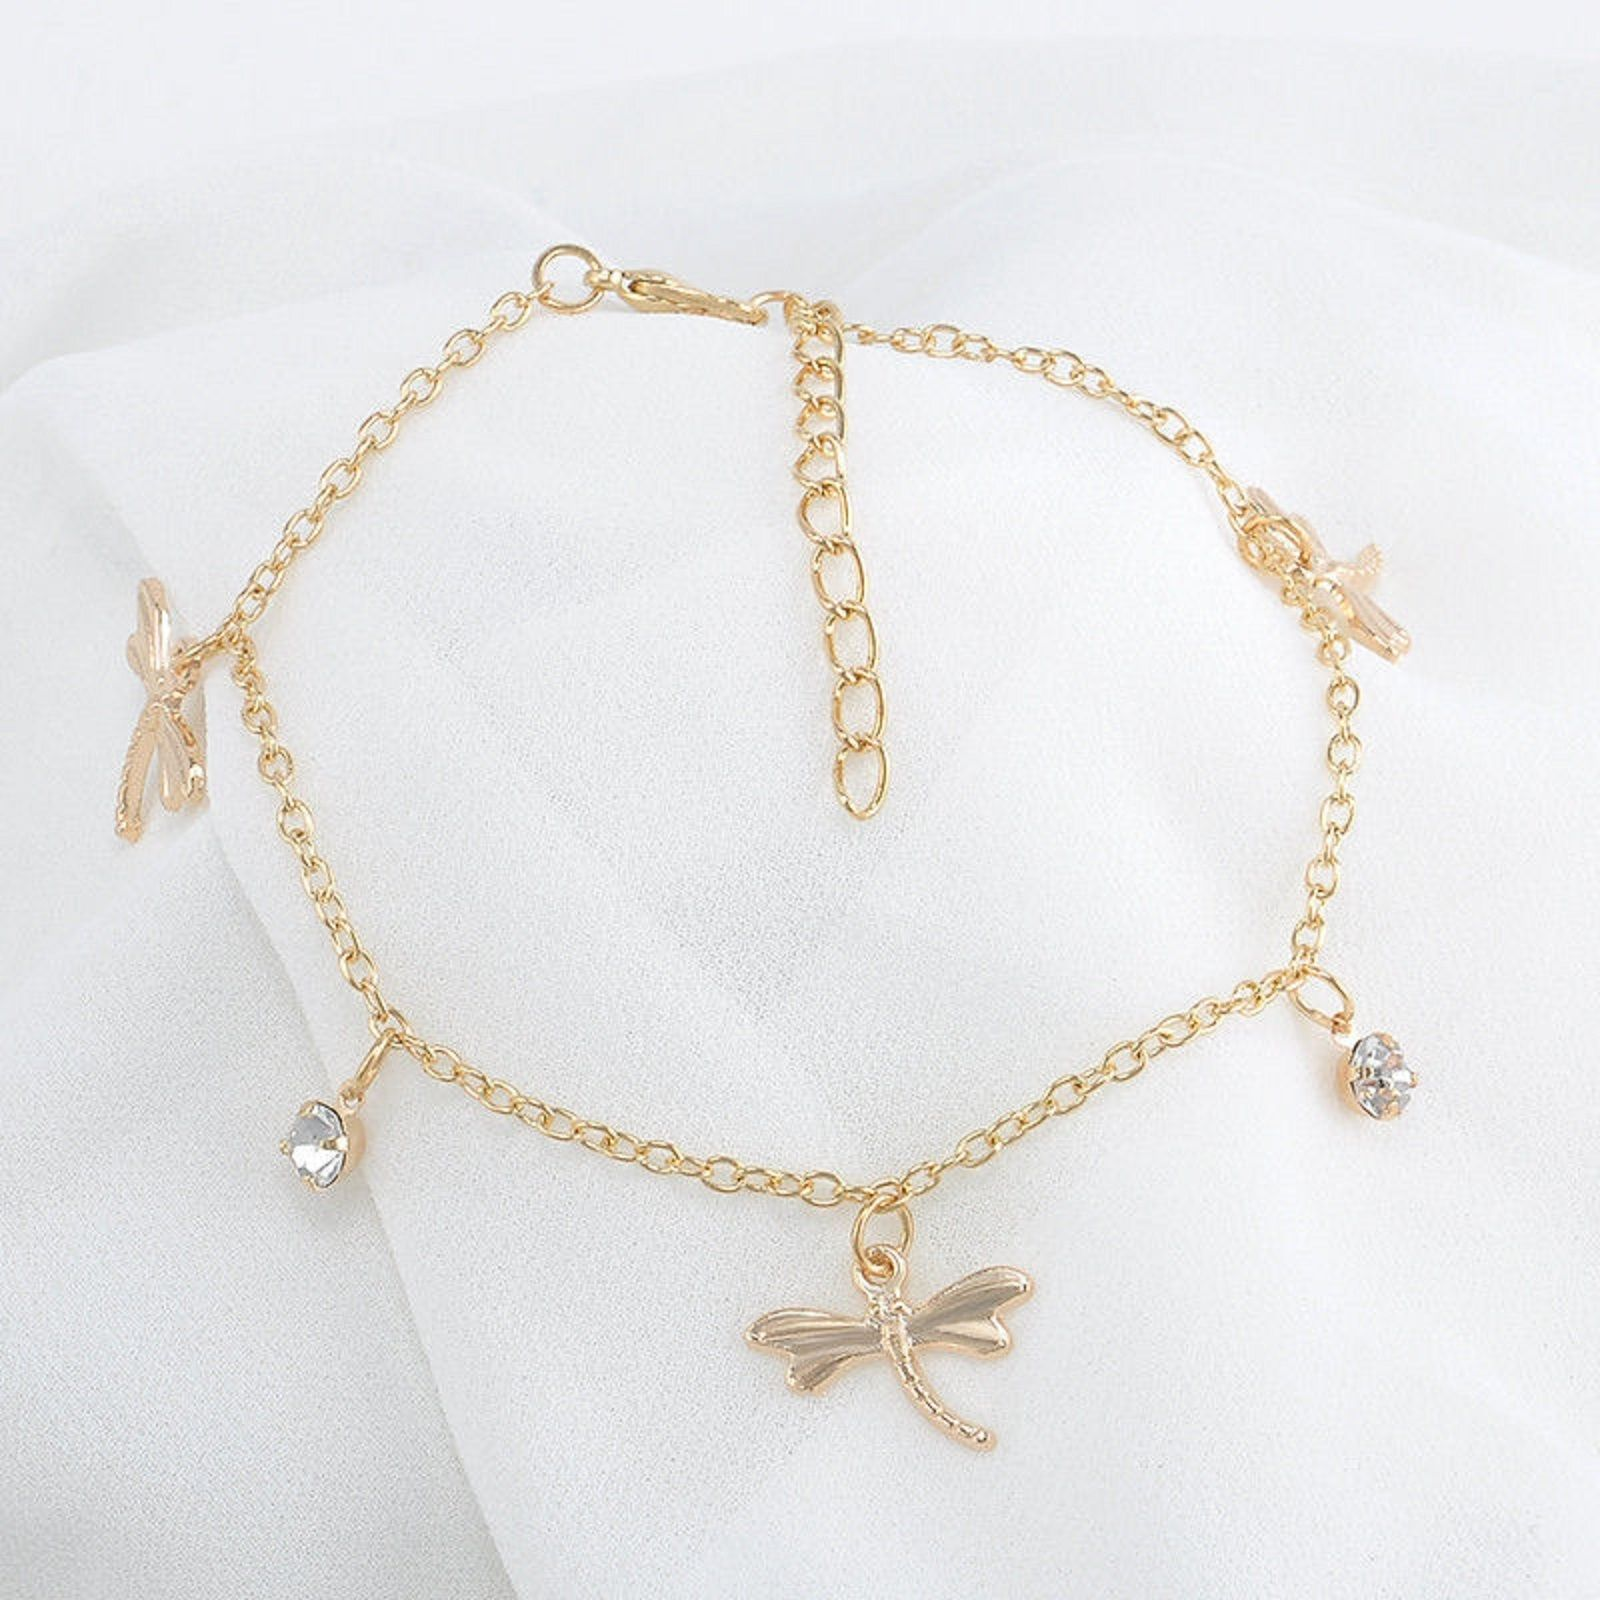 of bracelets sweet w tattoos dragonfly inspiration stainless only rolo charm daisy gold and s chain filled wholesale in innovation g pearls natural meaning ankle boho bracelet sterling heart love pearl this silver pinterest freshwater is enamel design womens anklet available inspiring idea made steel